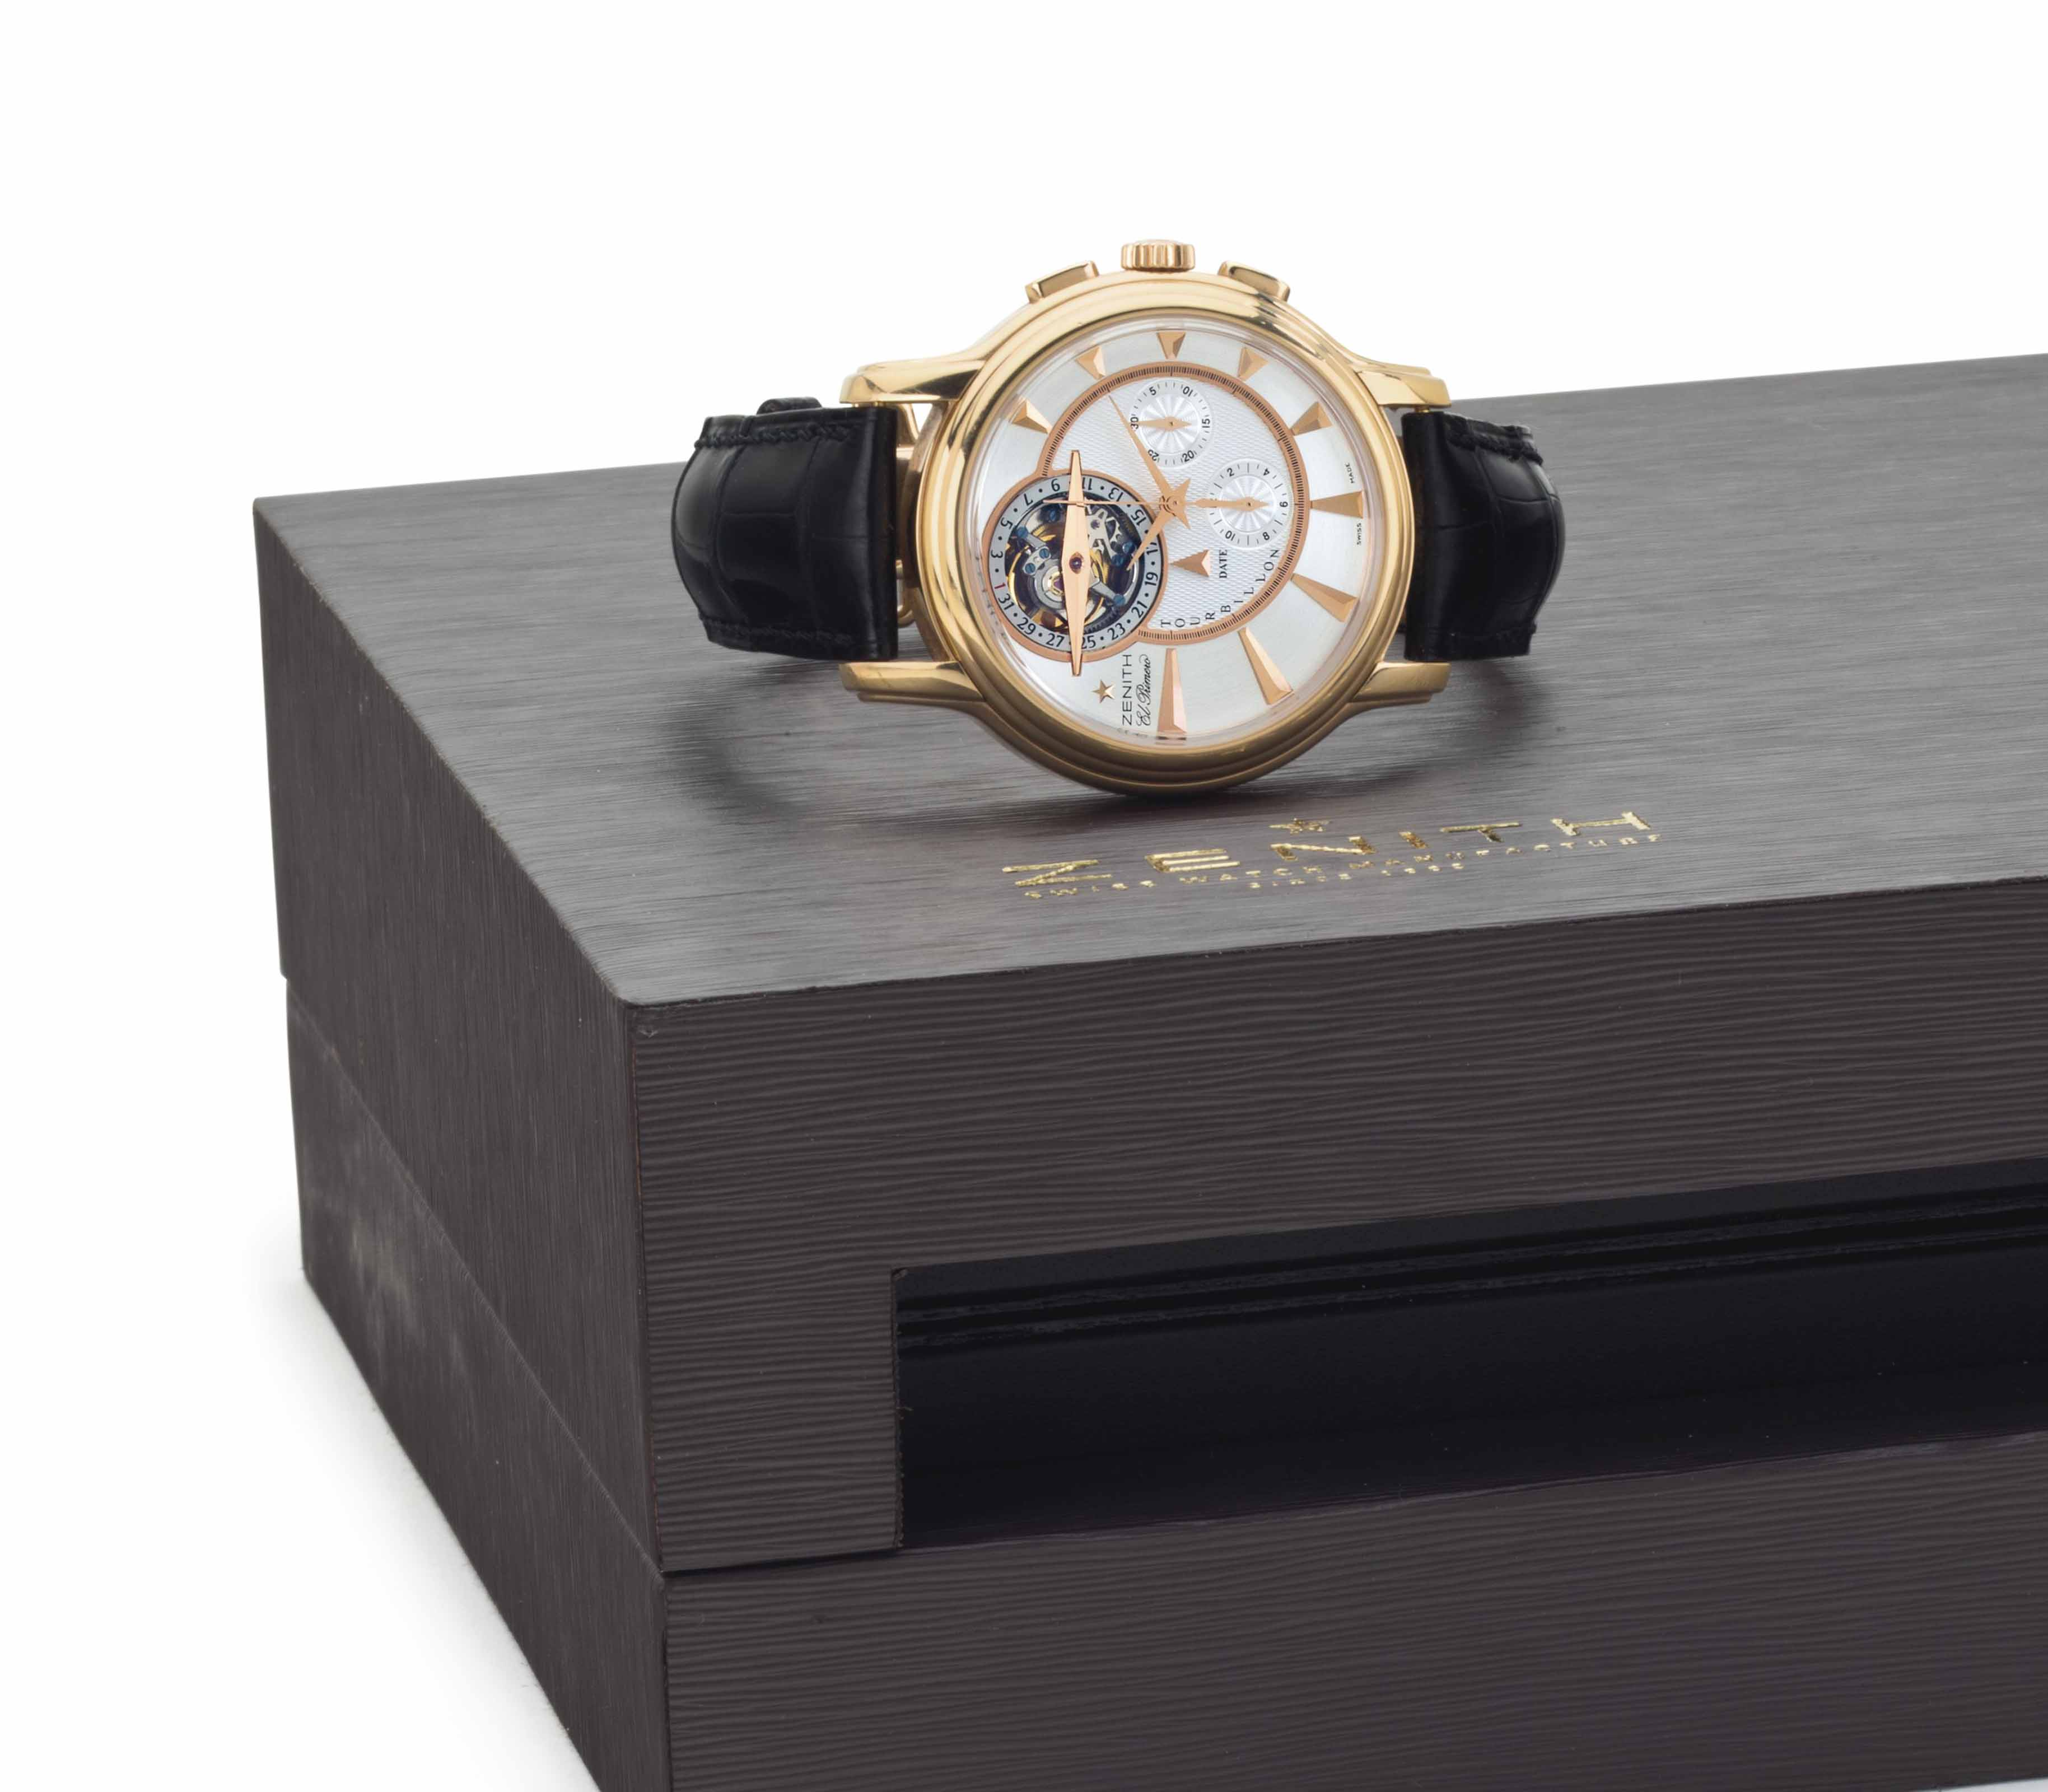 Zenith. A Very Fine and Large 18k Pink Gold Limited Edition Tourbillon Chronograph Wristwatch with Date